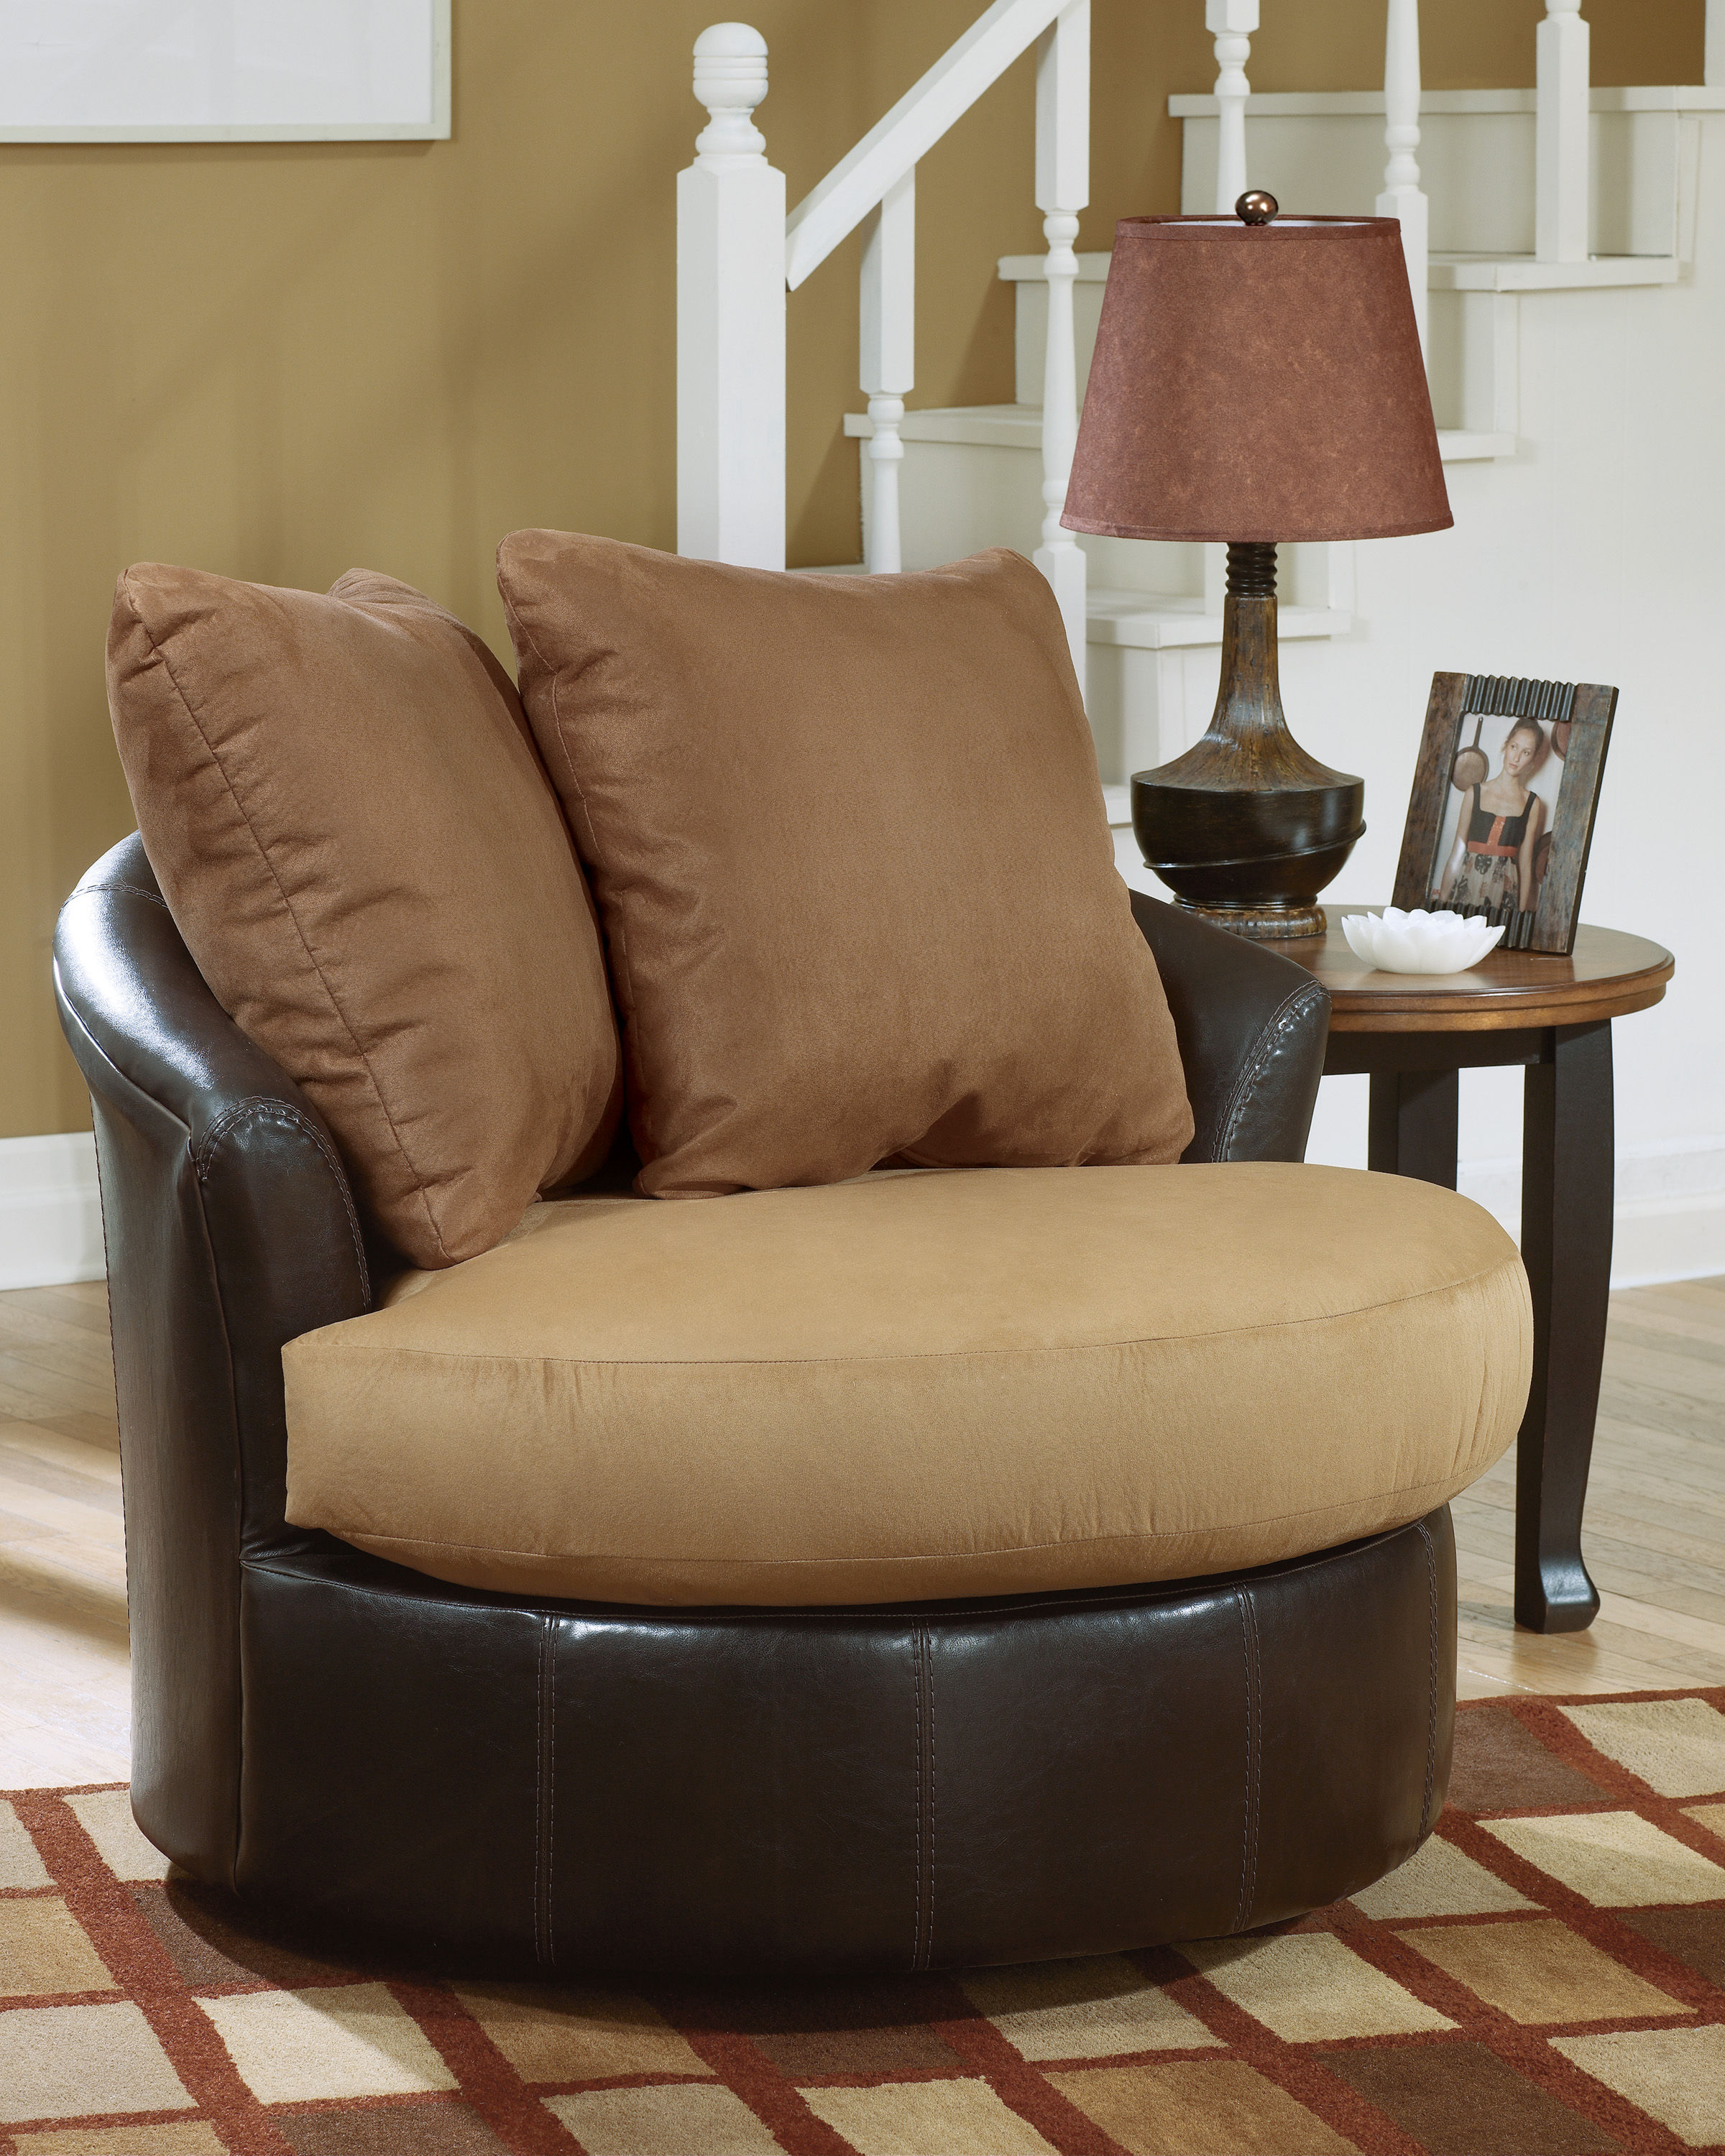 Contemporary Saddle Round Swivel Chair